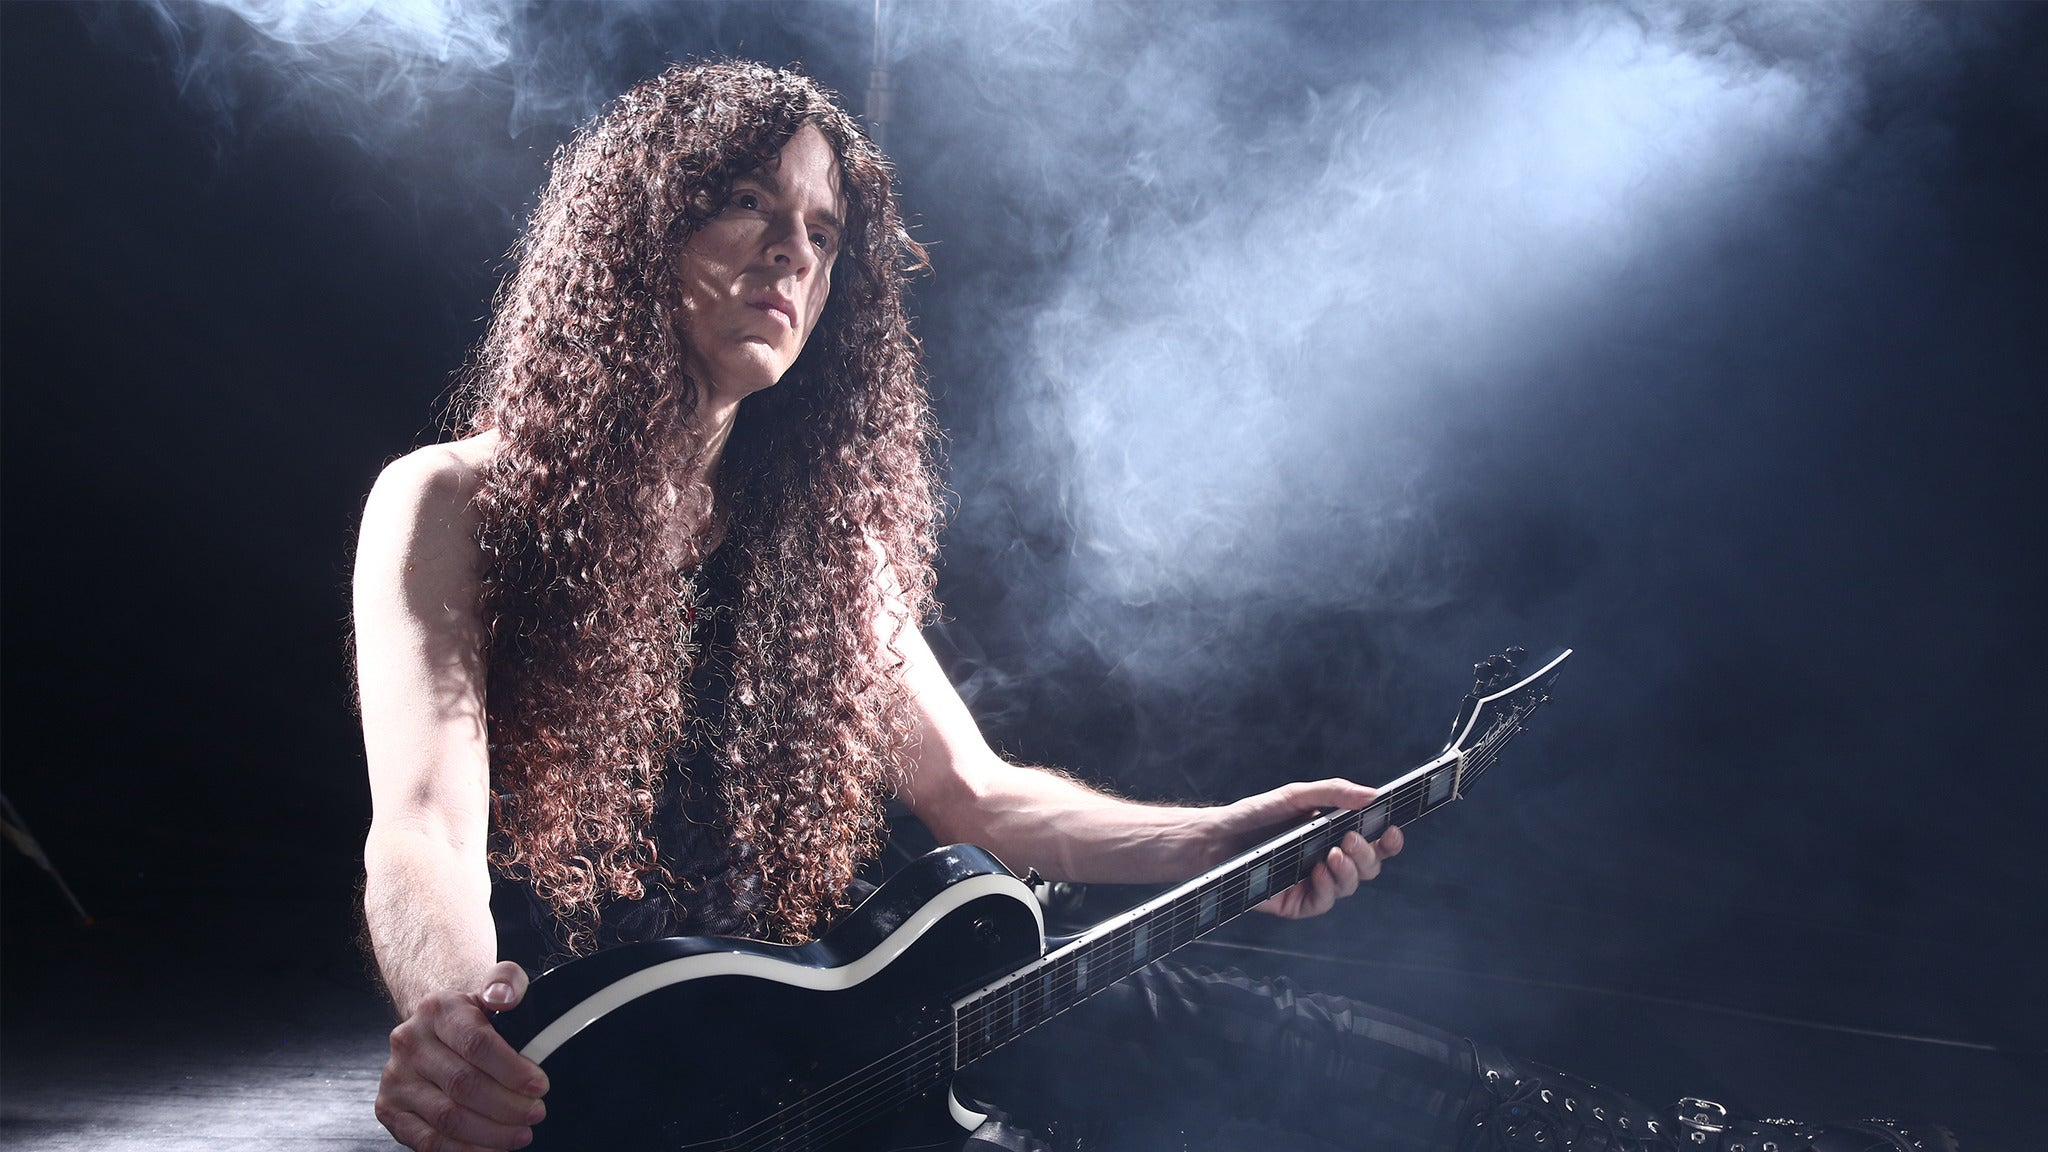 Marty Friedman Guitar Masterclass